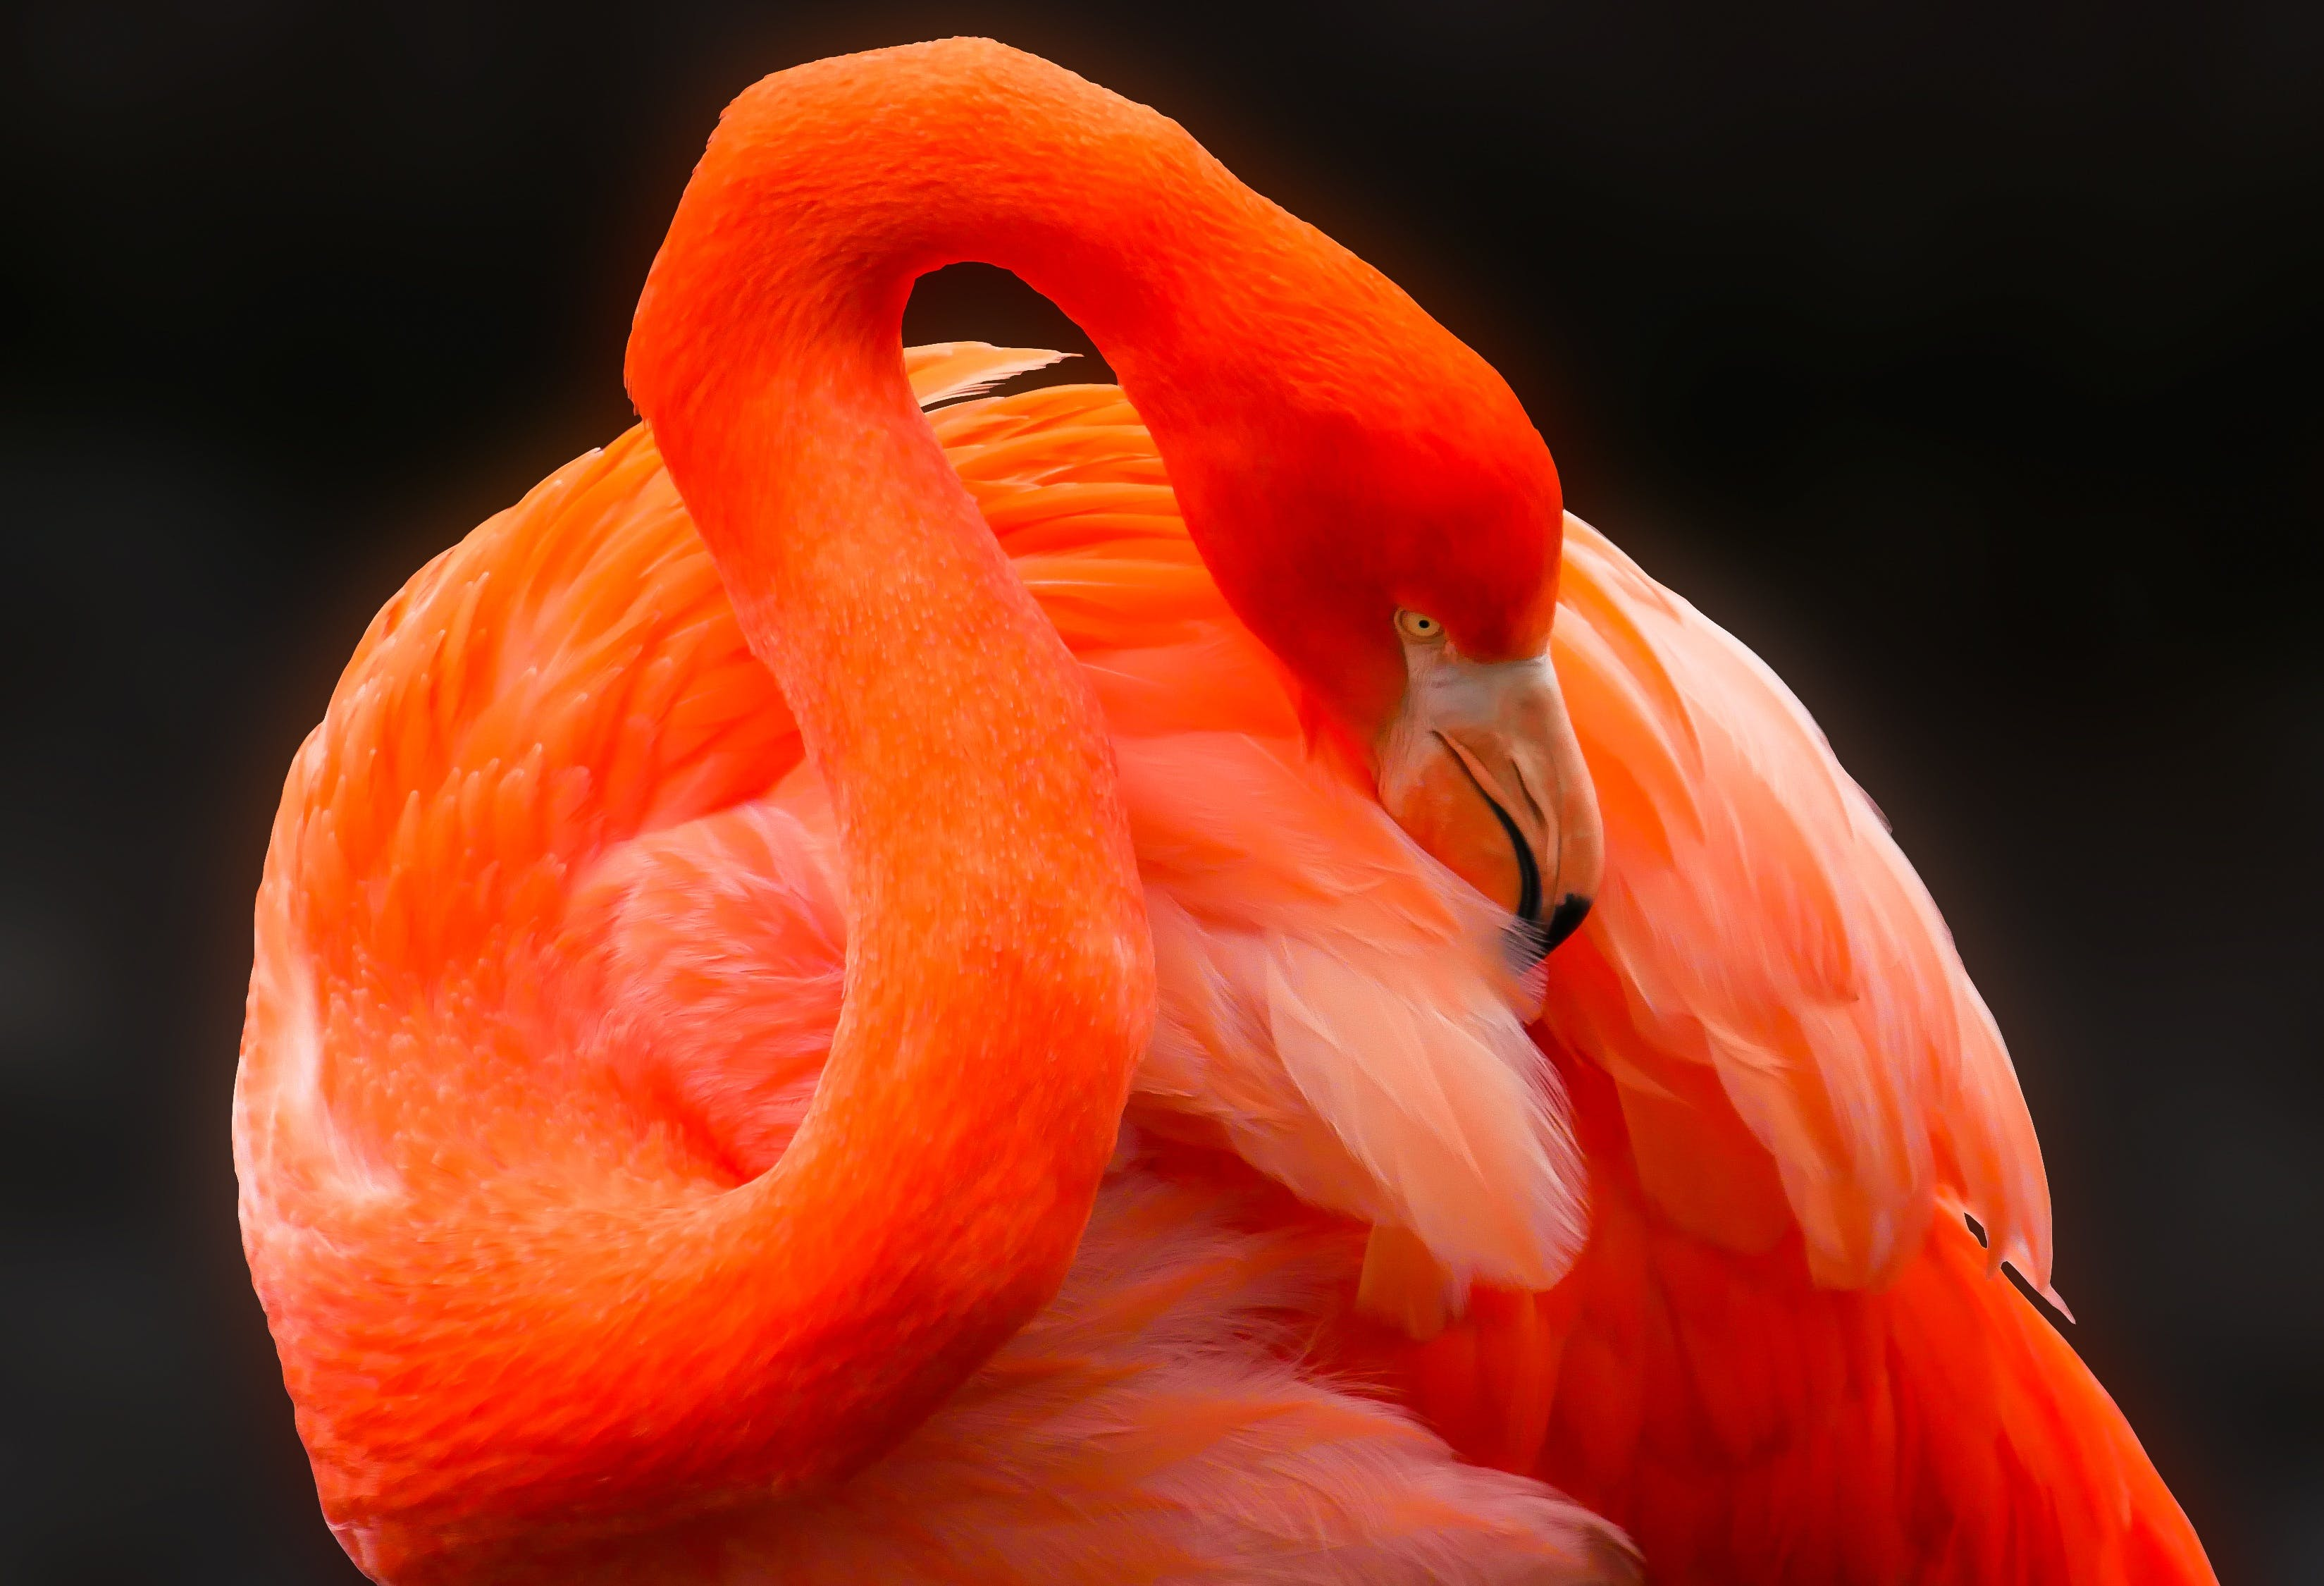 Free stock photo of bird, red, animal, flamingo